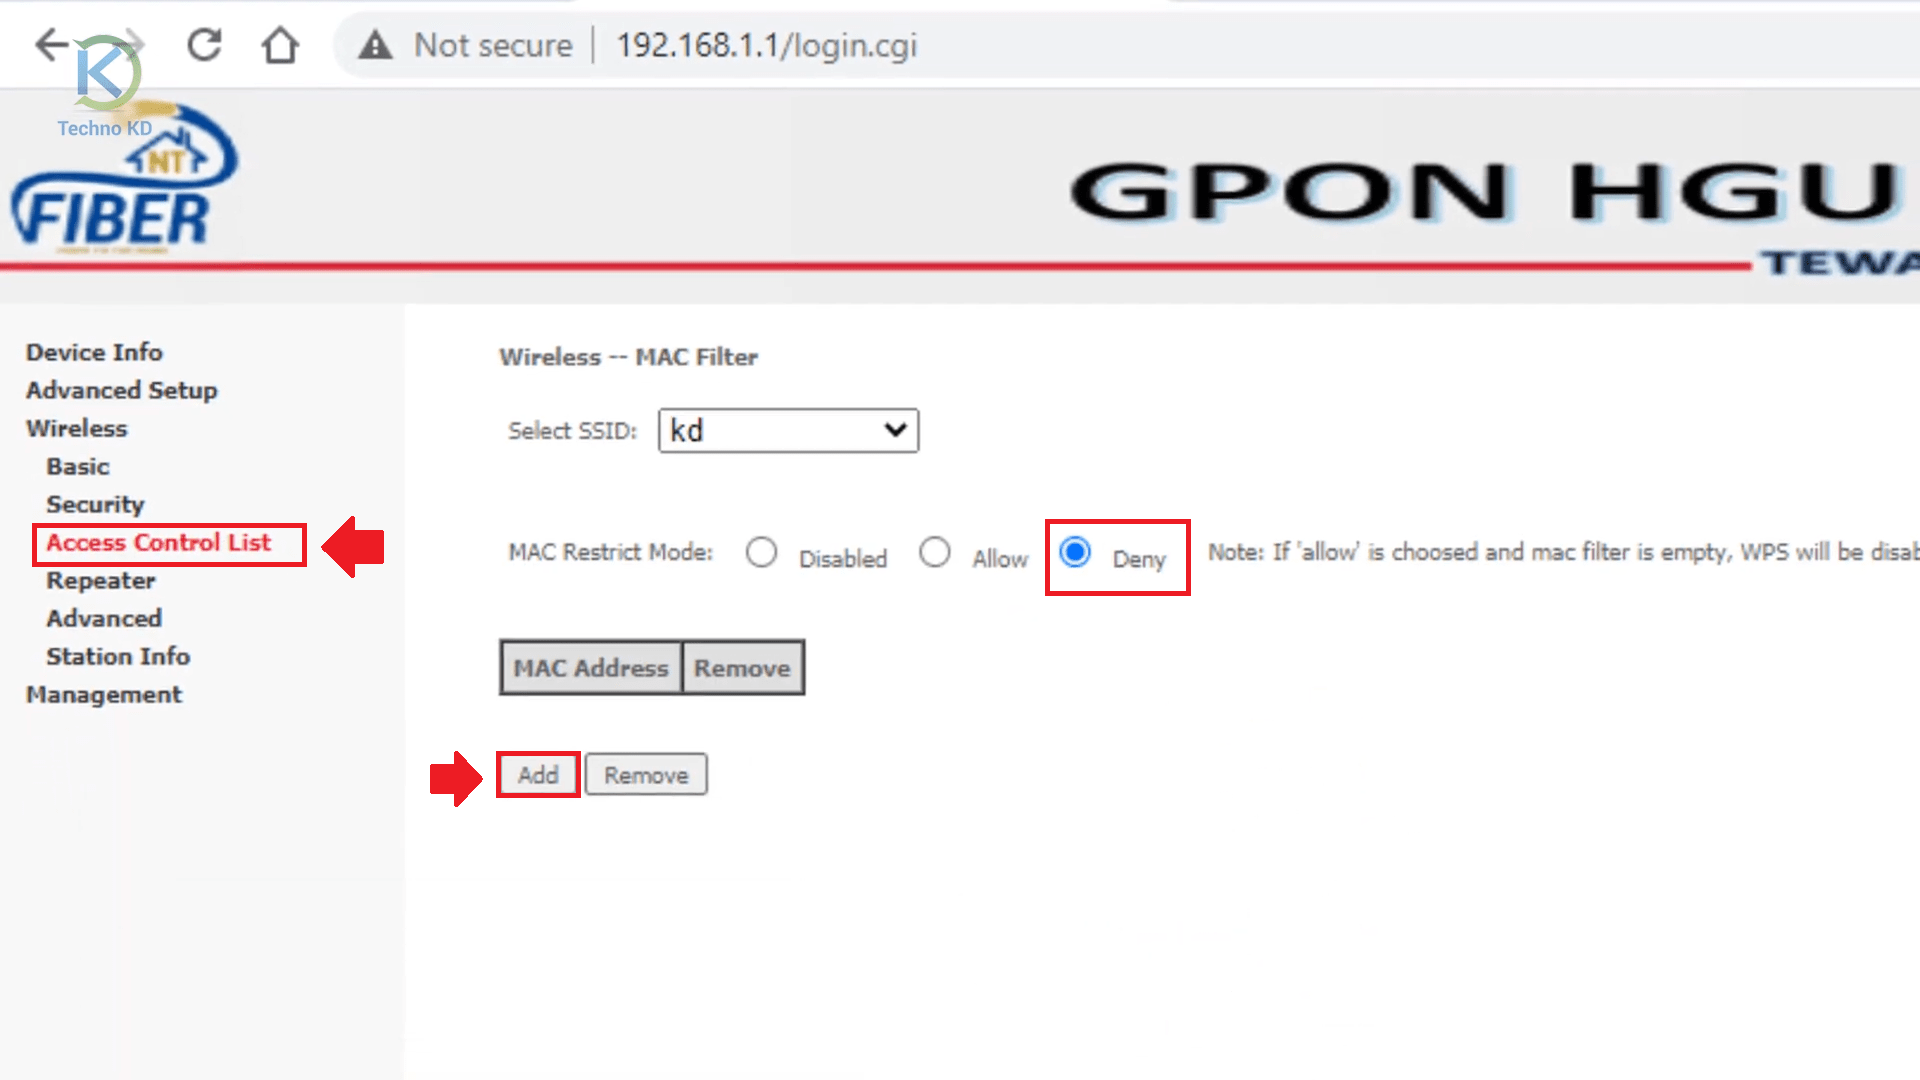 How To Block WiFi Users In NT Fiber Internet